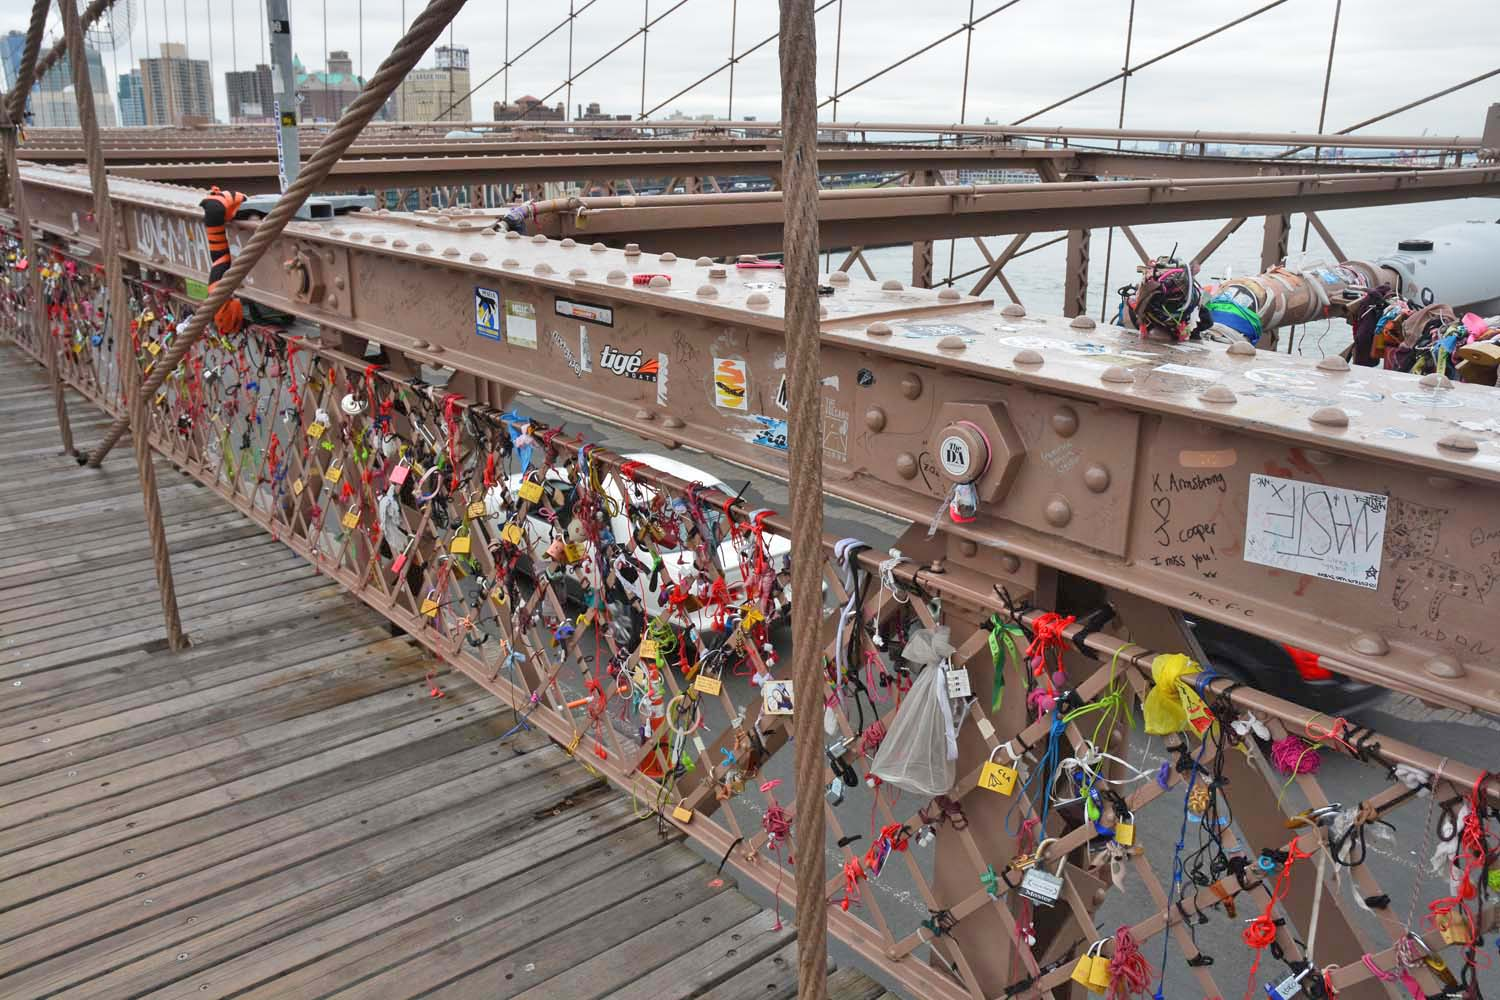 Brooklyn Bridge walk - Padlocks on bridges symbolize love with couples names enscribed